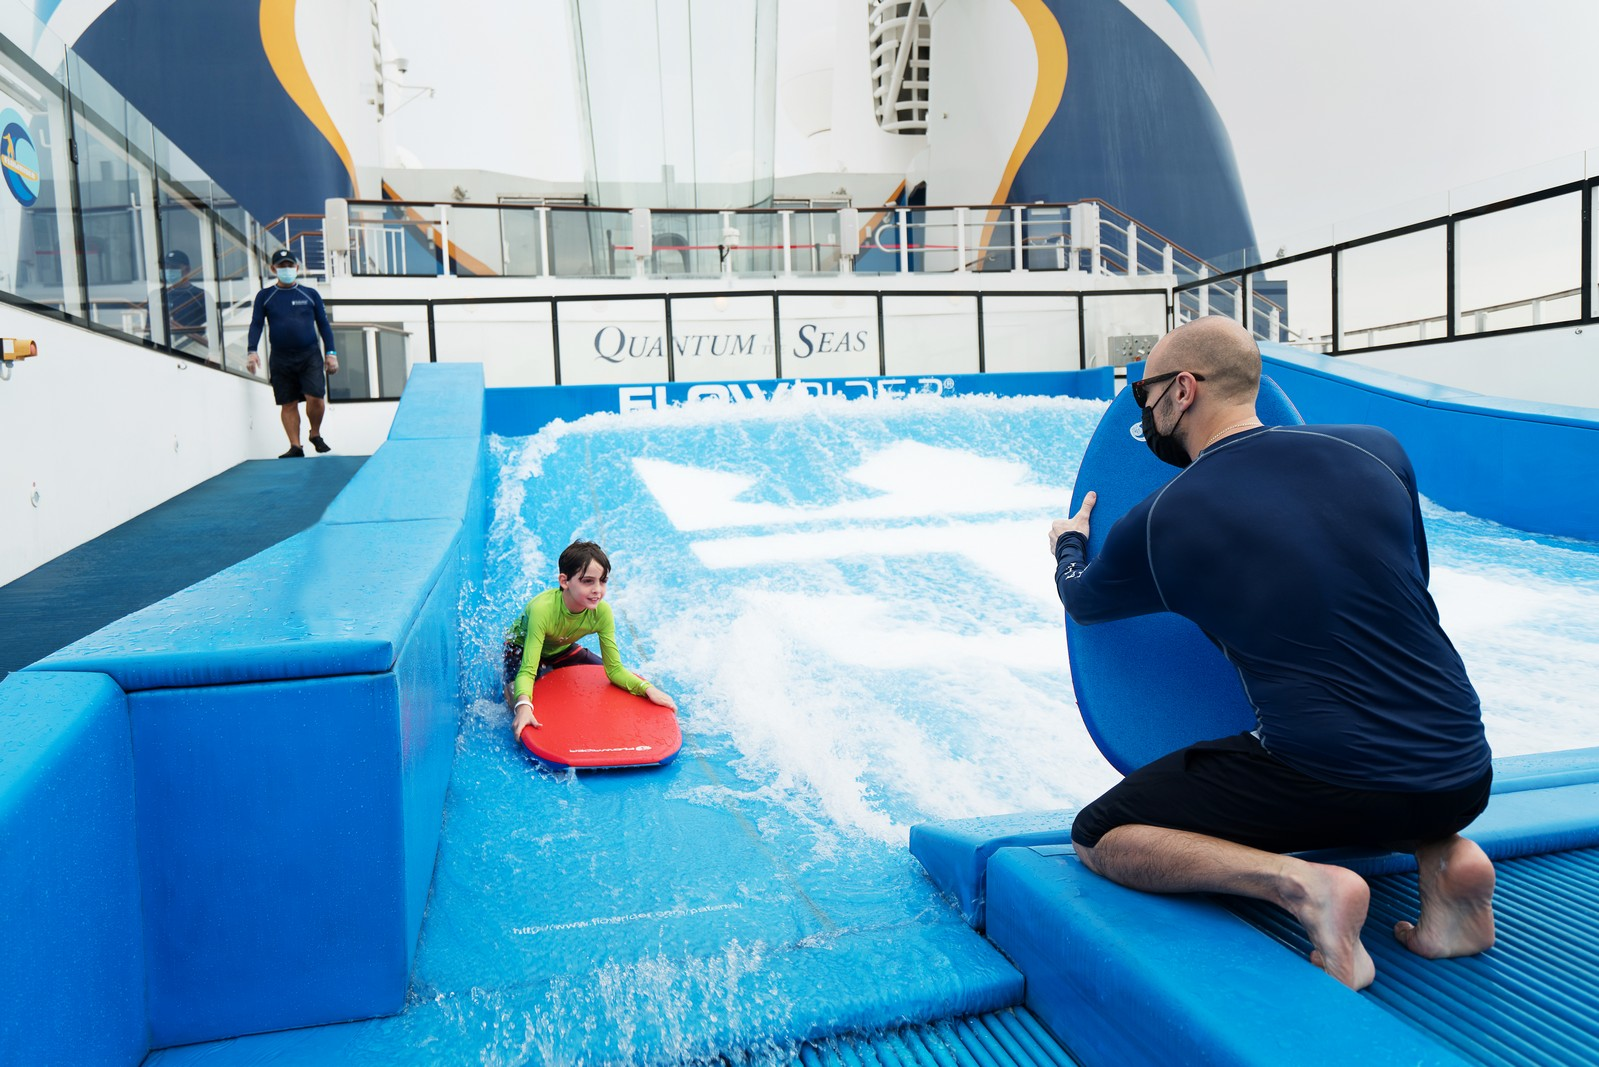 Cruising Update: Royal Caribbean Is Not Changing Any Plans Despite New Covid-19 Cases